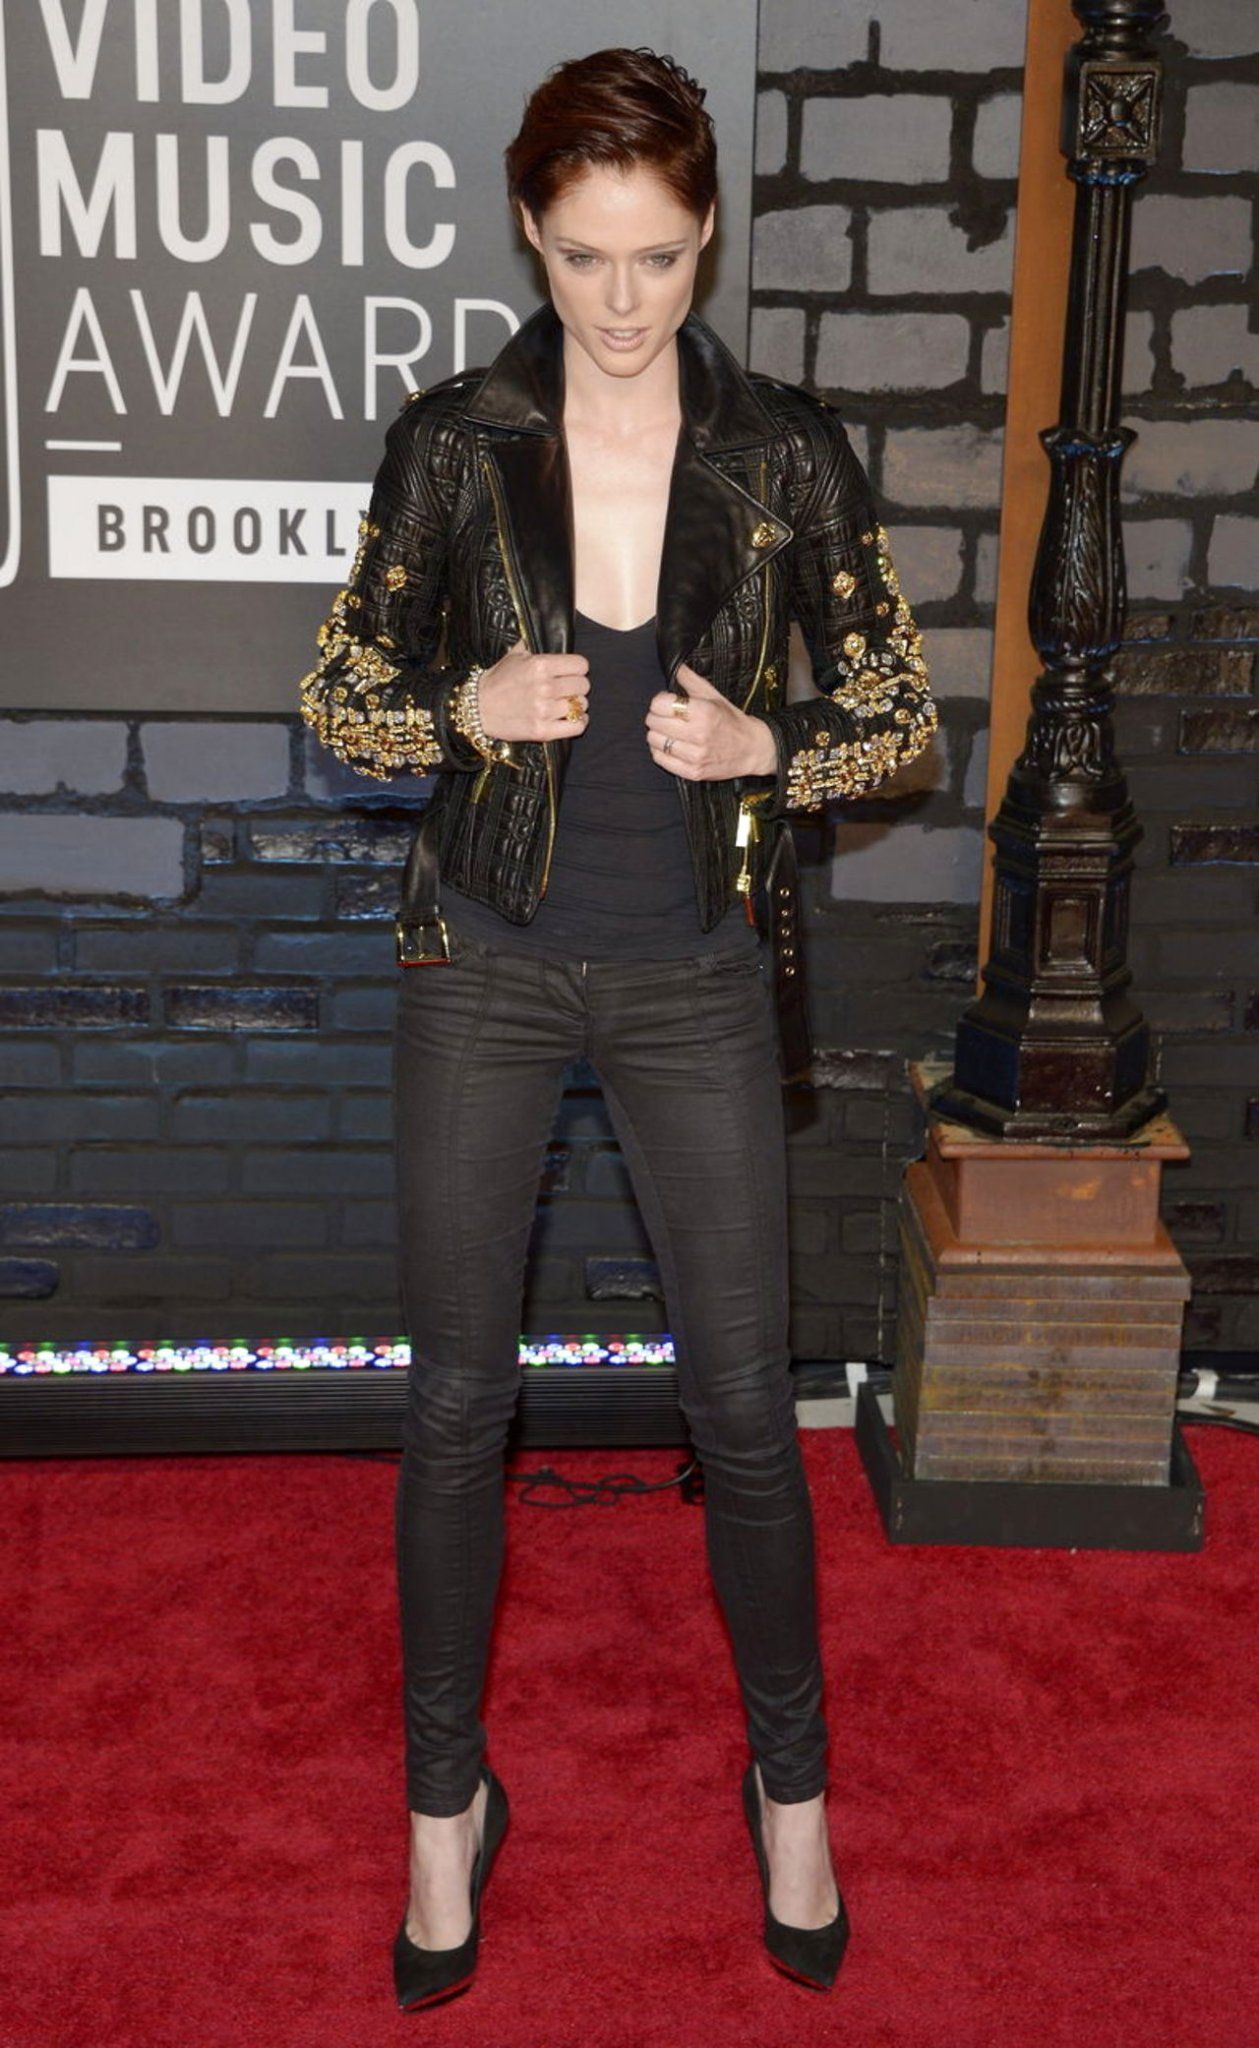 Super model Coco Rocha. Love this outfit from the VMA's